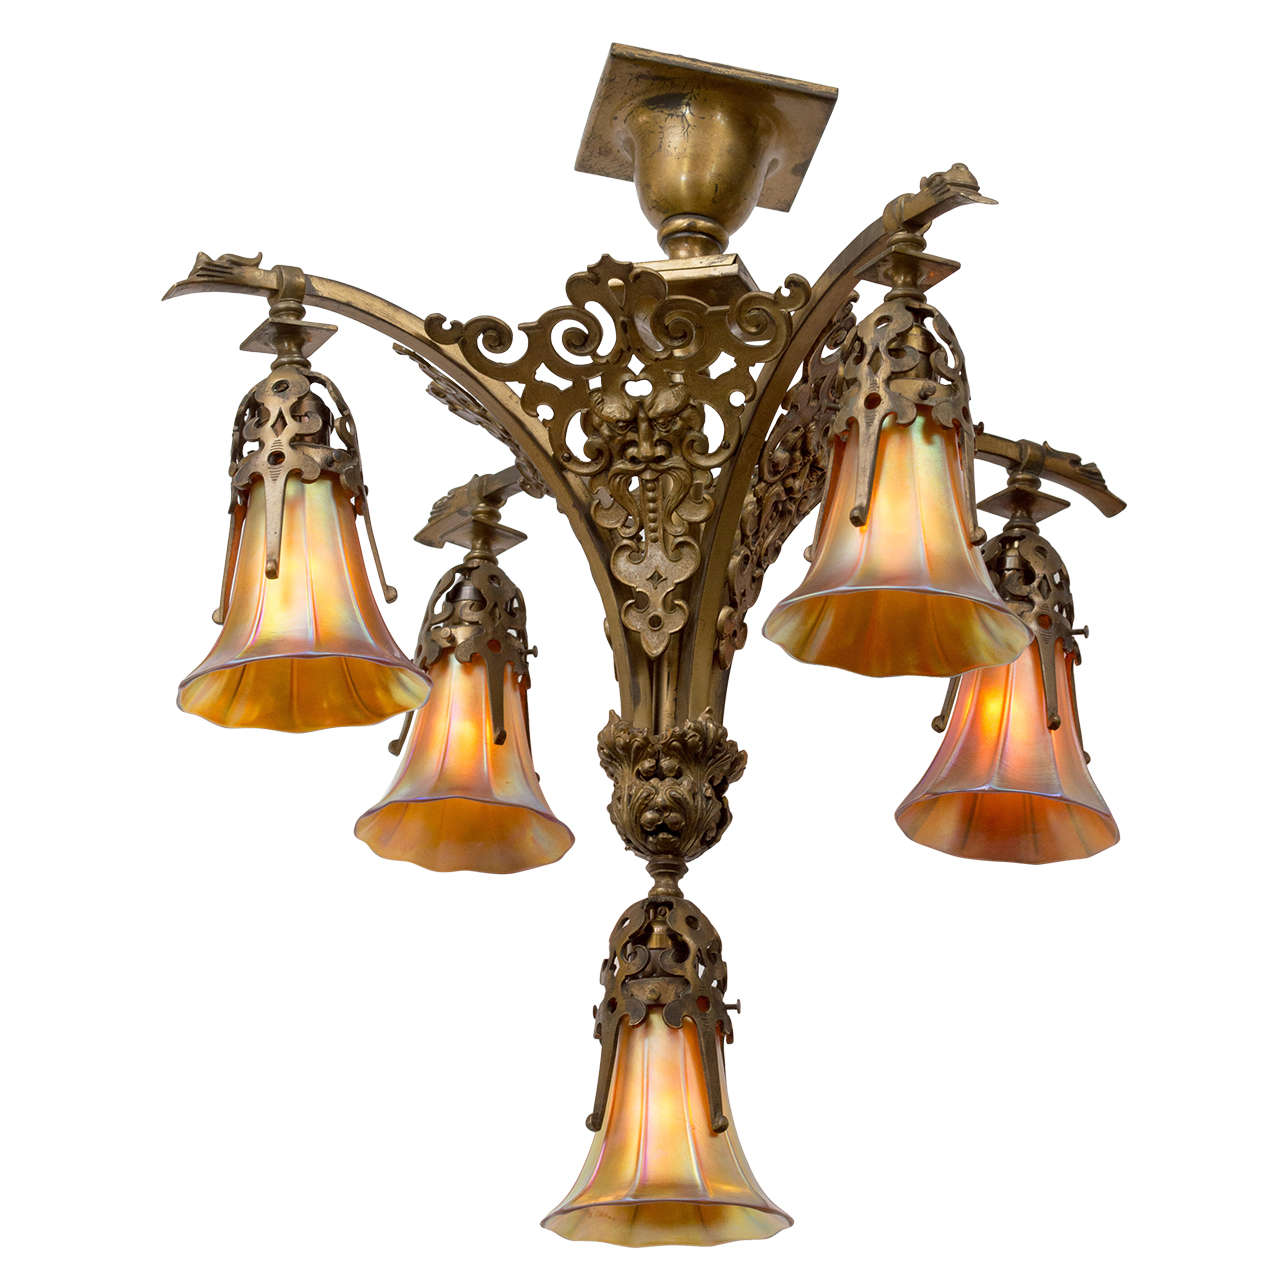 Victorian gothic five arm chandelier with period art glass shades at victorian gothic five arm chandelier with period art glass shades for sale aloadofball Gallery